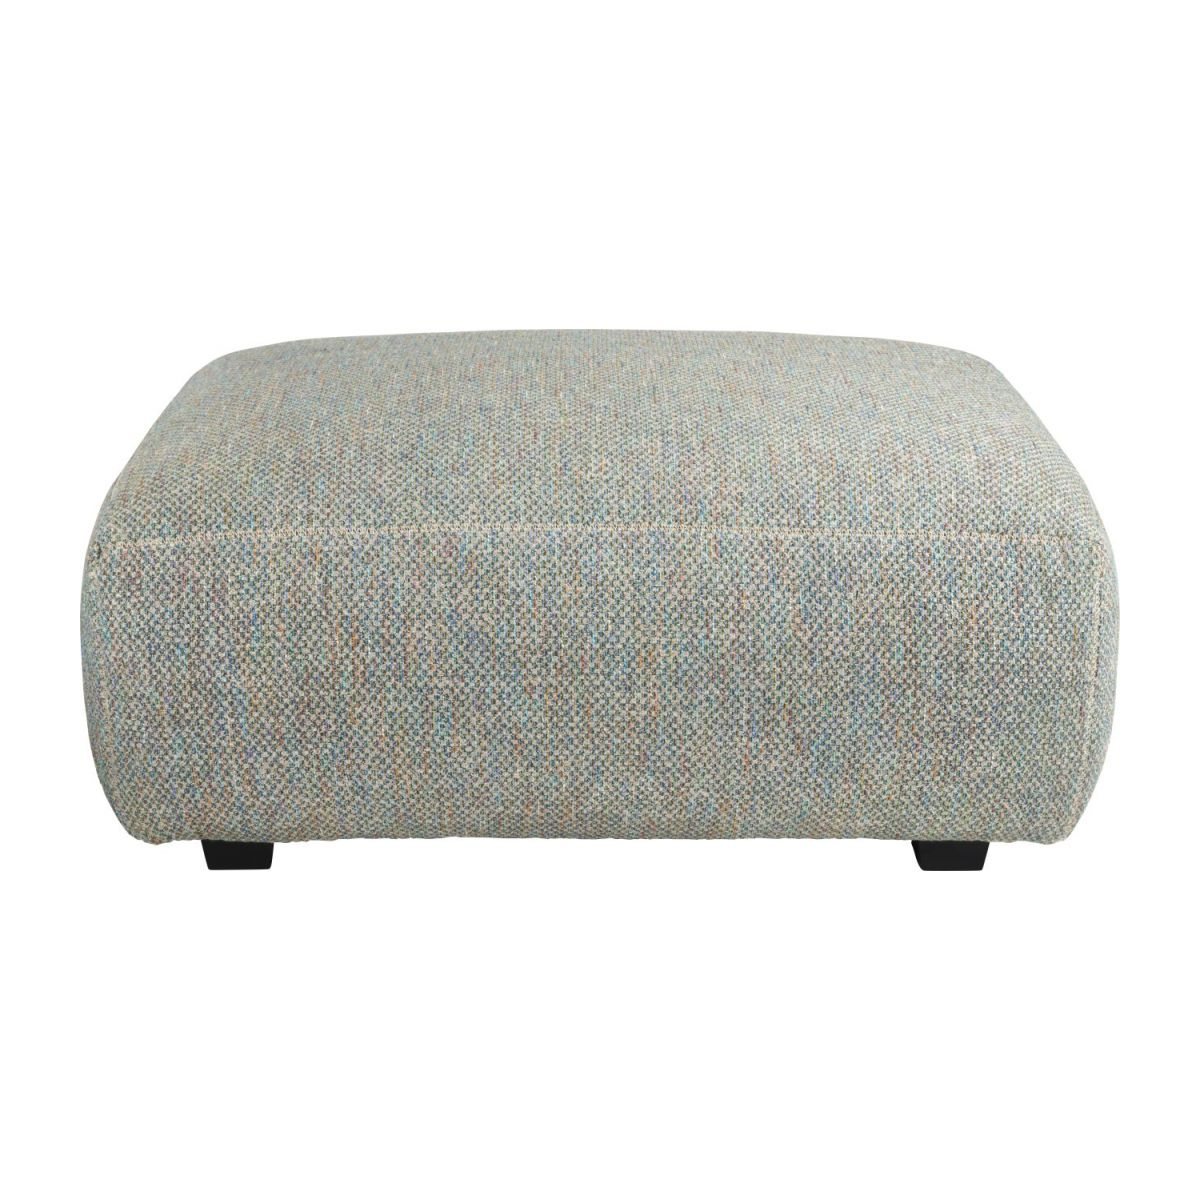 Hocker aus Stoff Bellagio organic green n°2